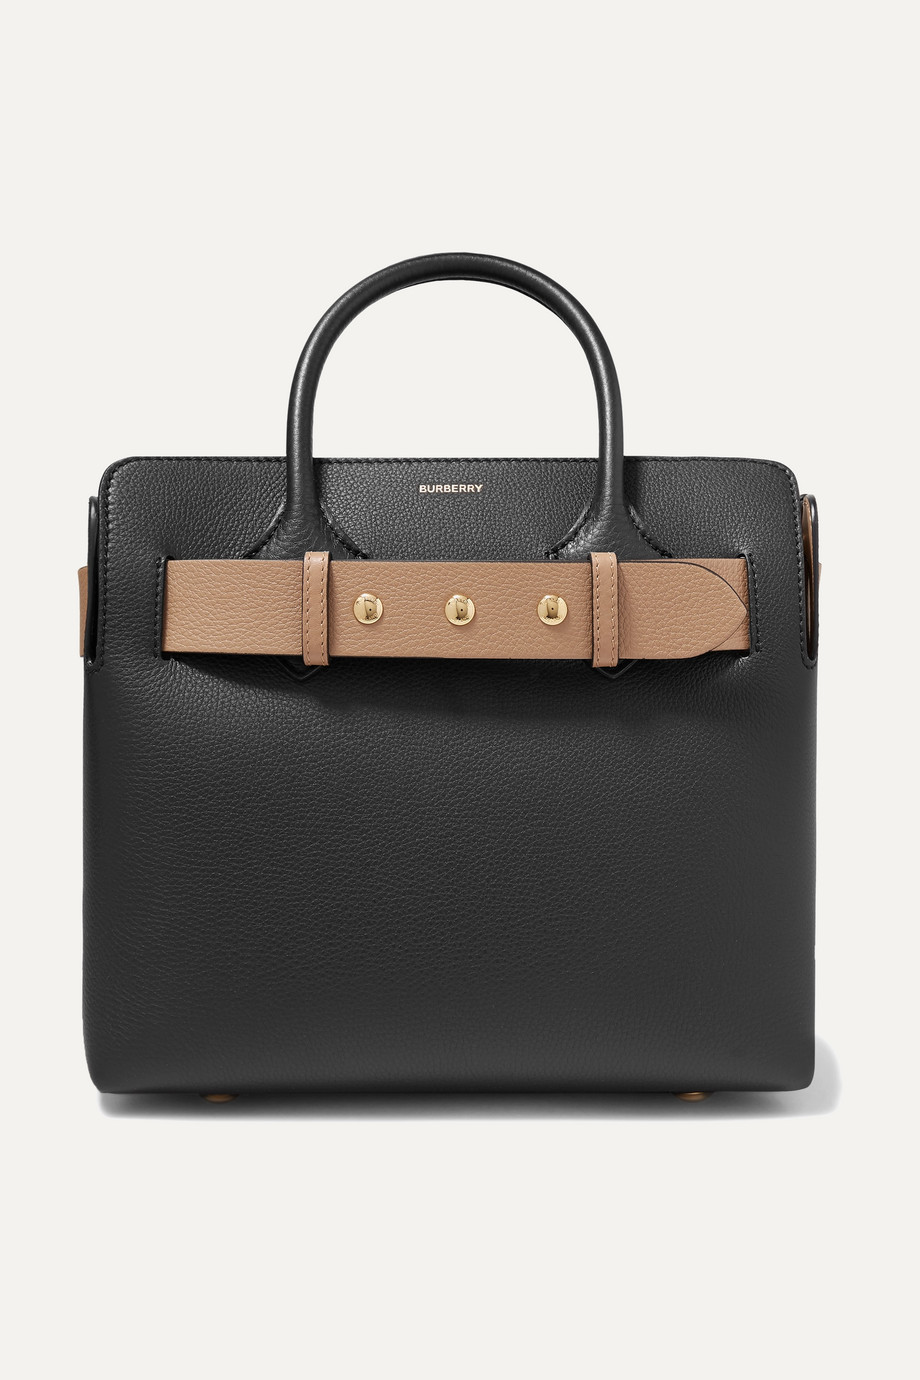 Burberry Small belted textured-leather tote